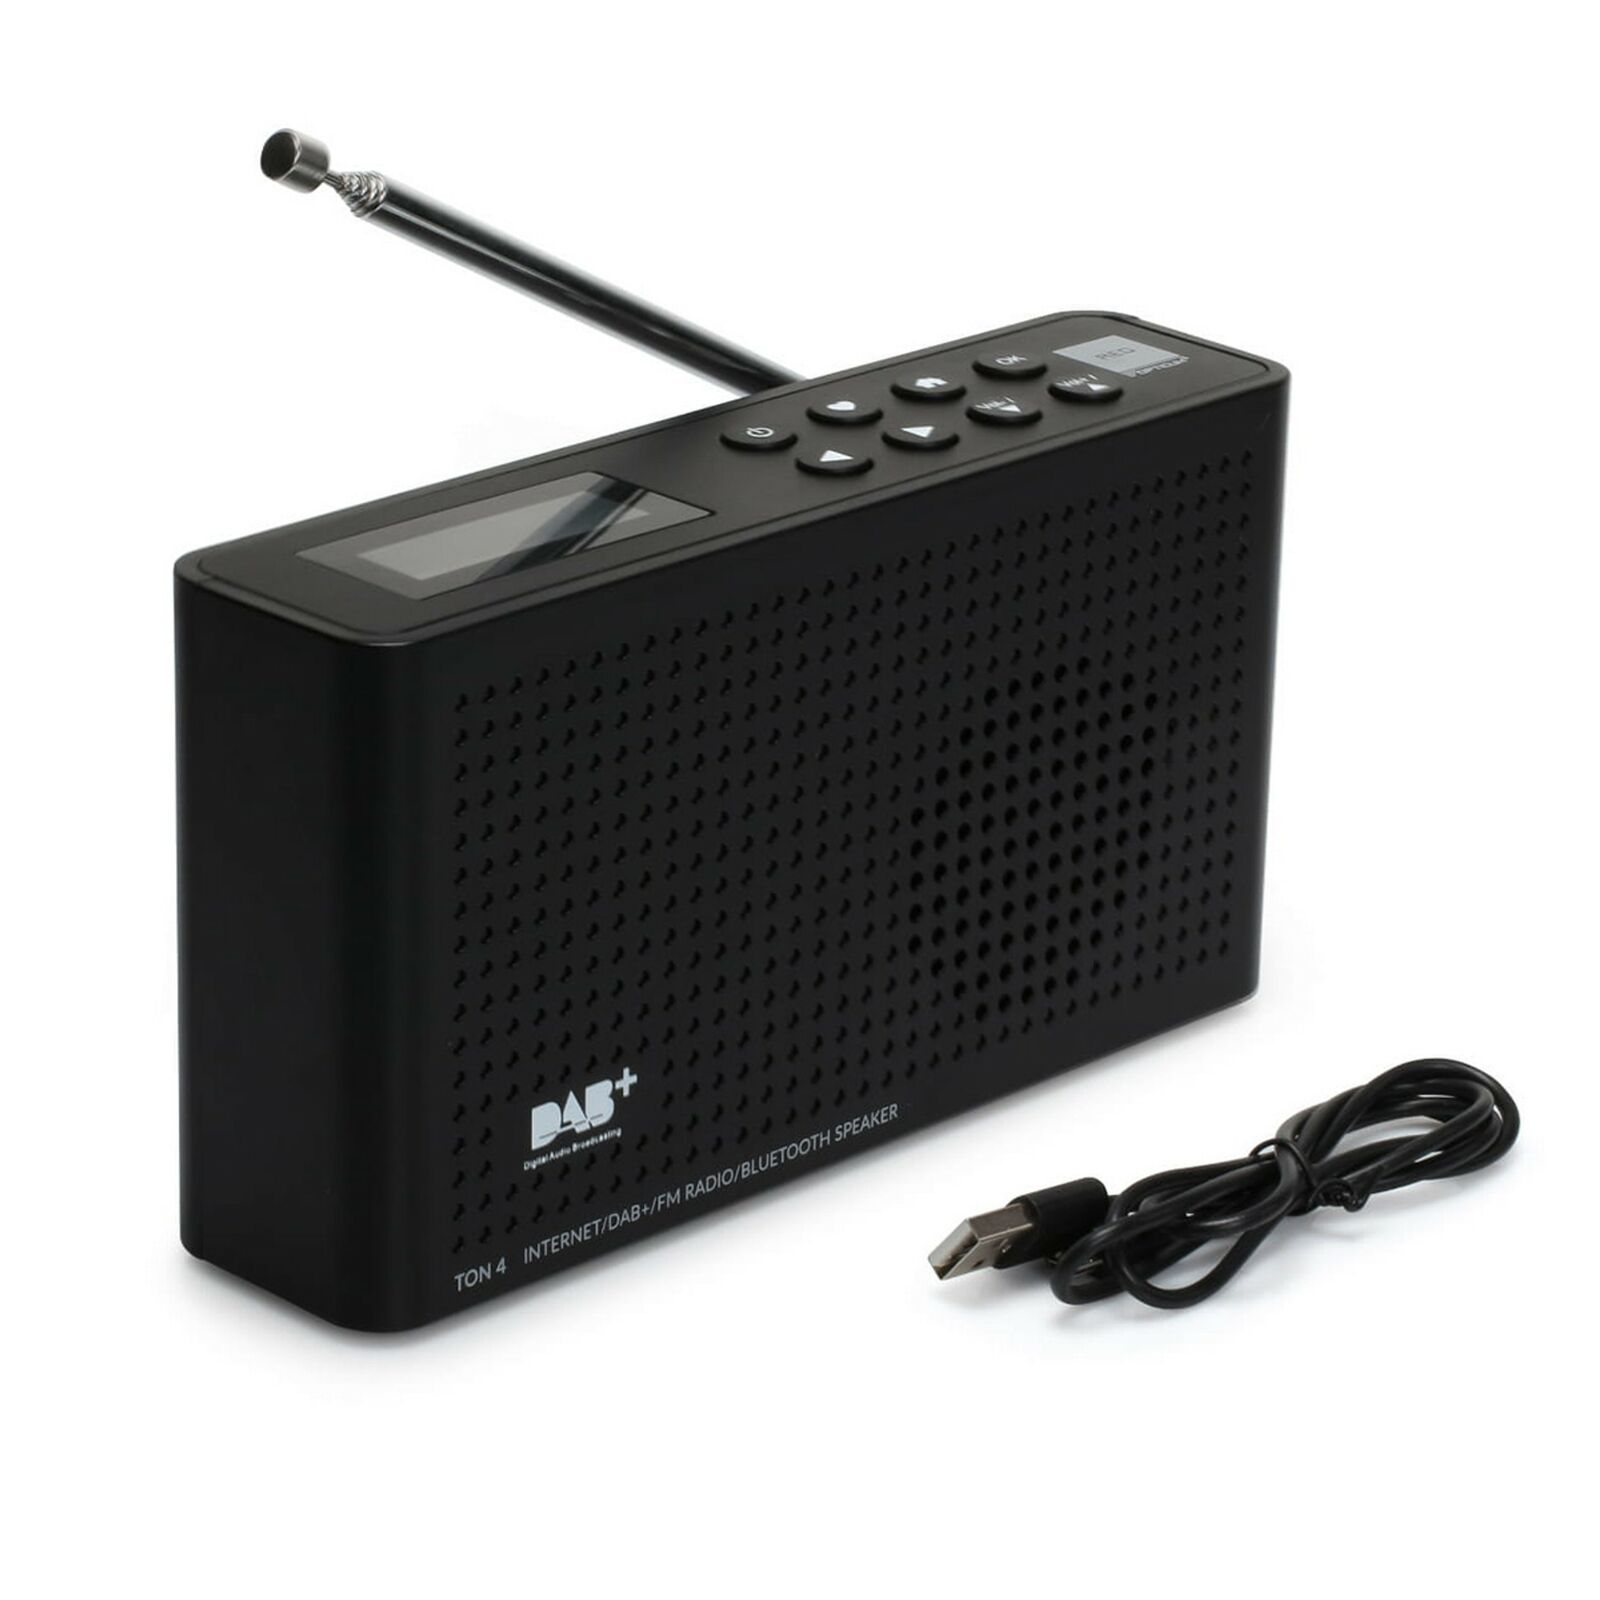 Internetradio DAB+ FM UKW Radio Opticum Ton4 LCD Display Wlan Bluetooth schwarz